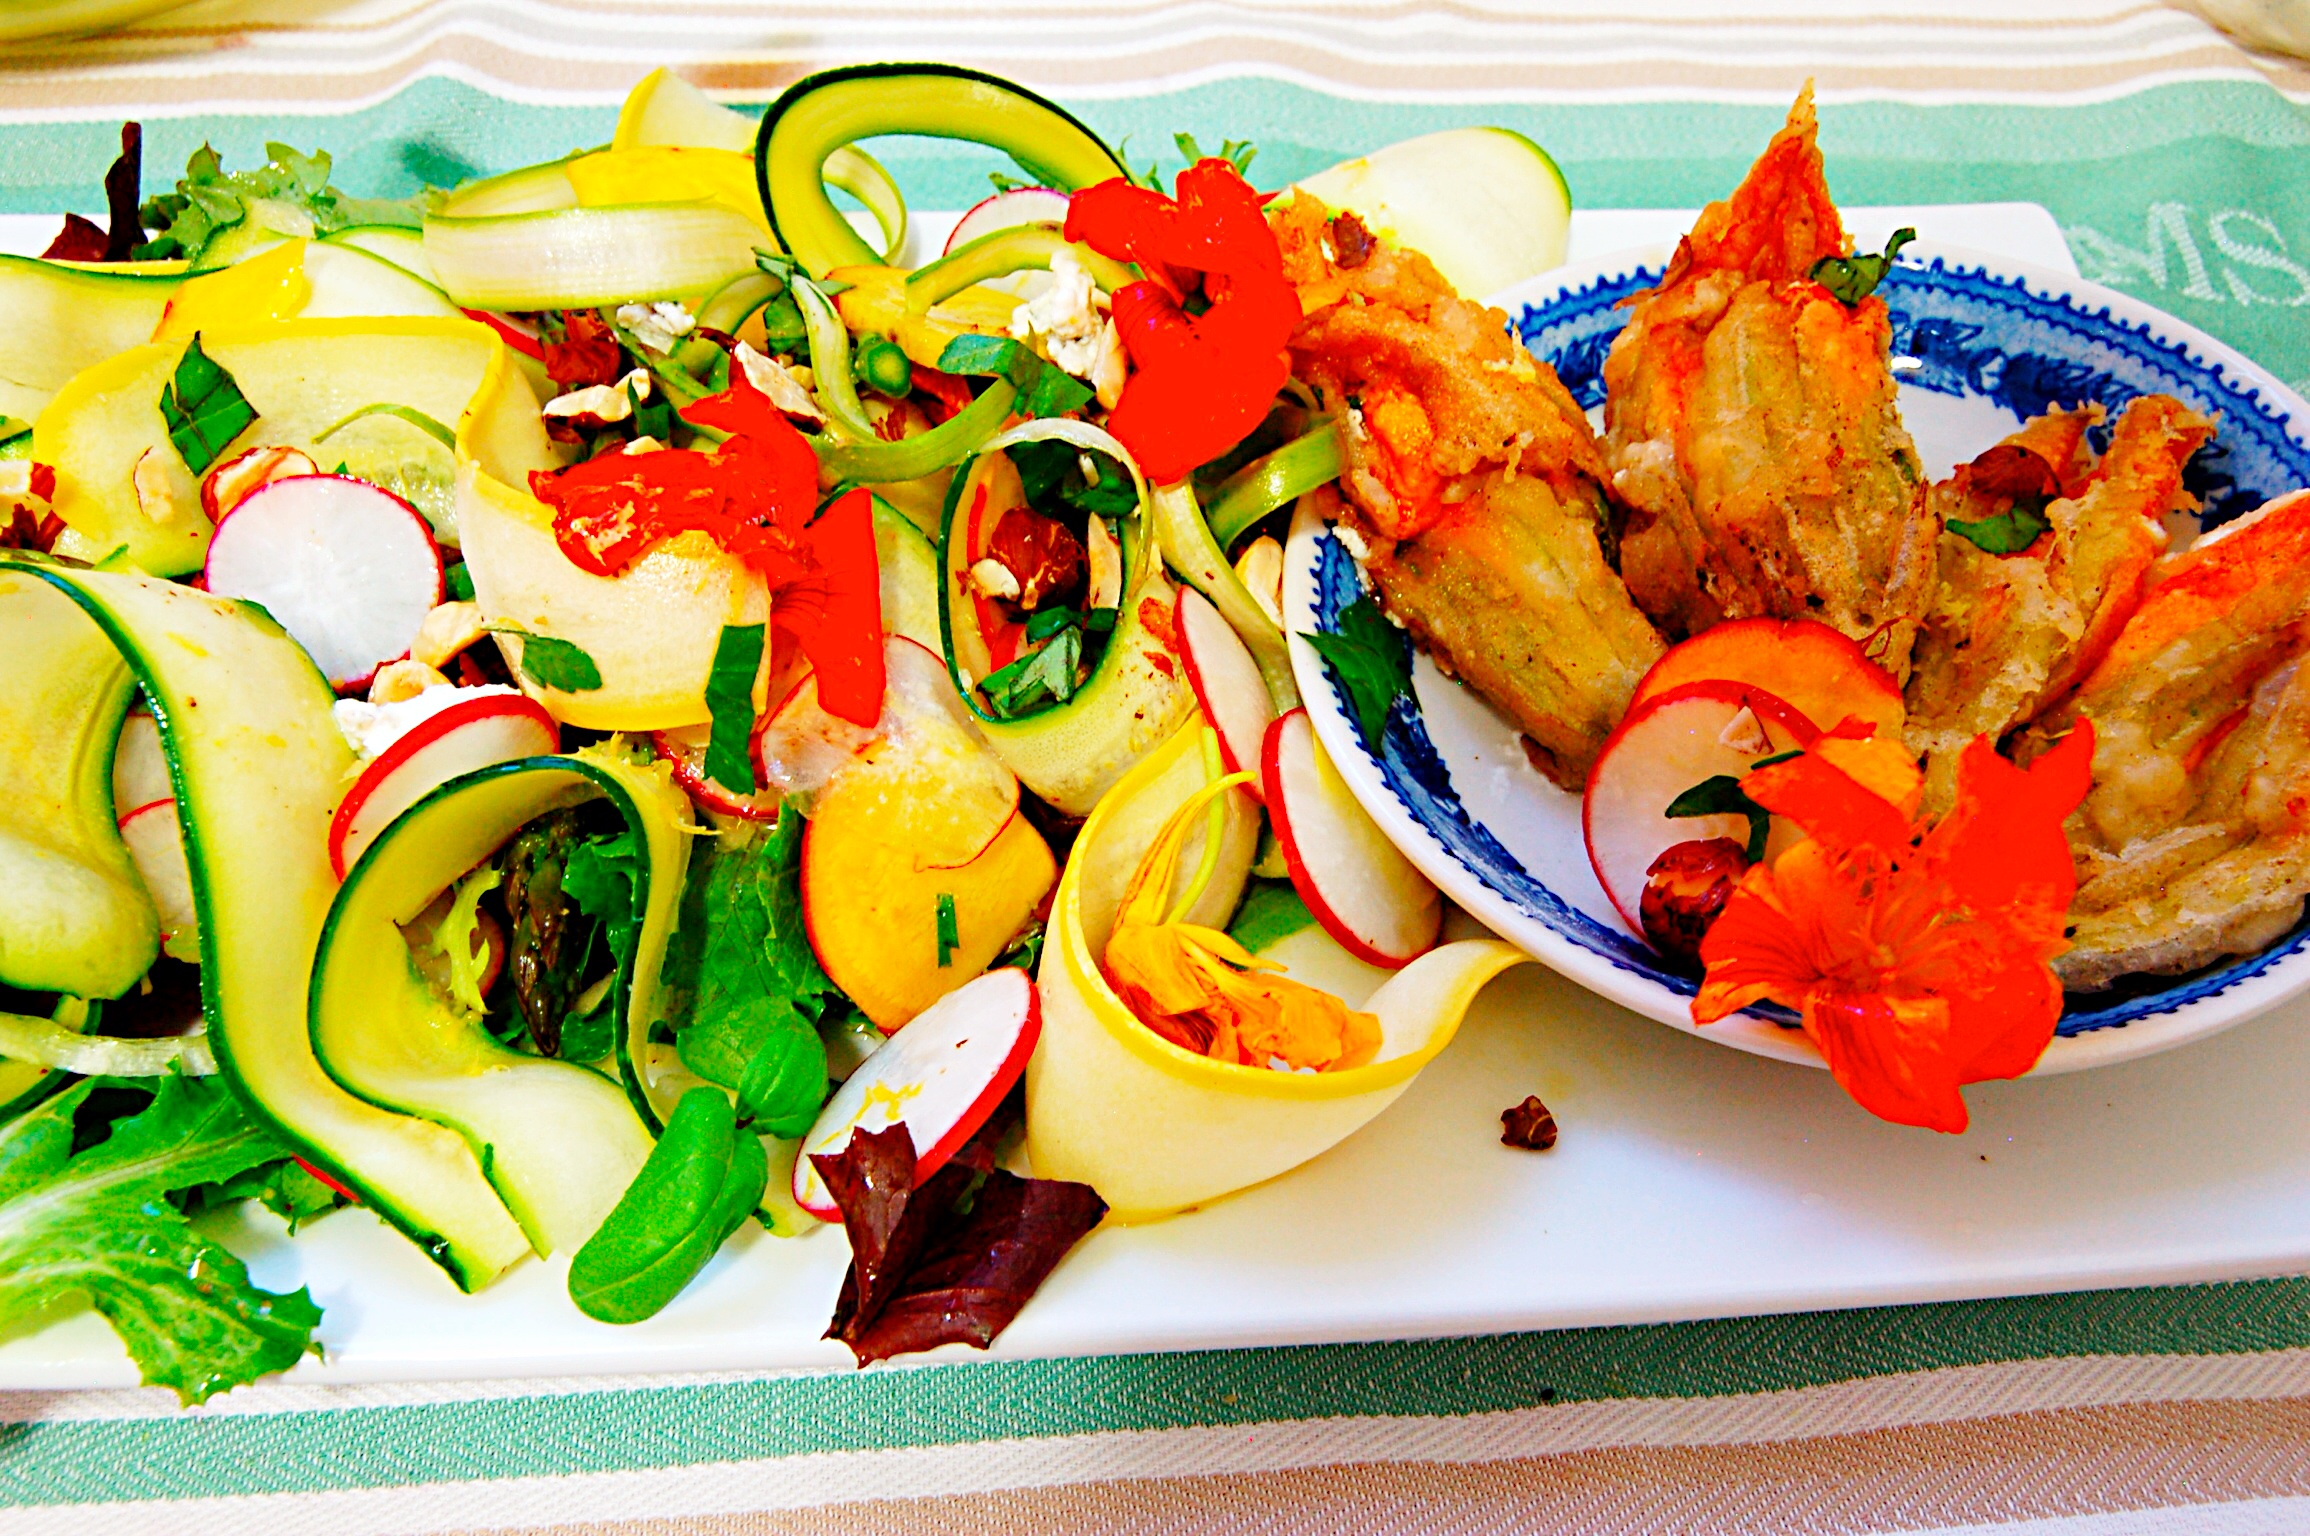 Fried Squash Blossoms and Shaved Zucchini Salad Recipe marina